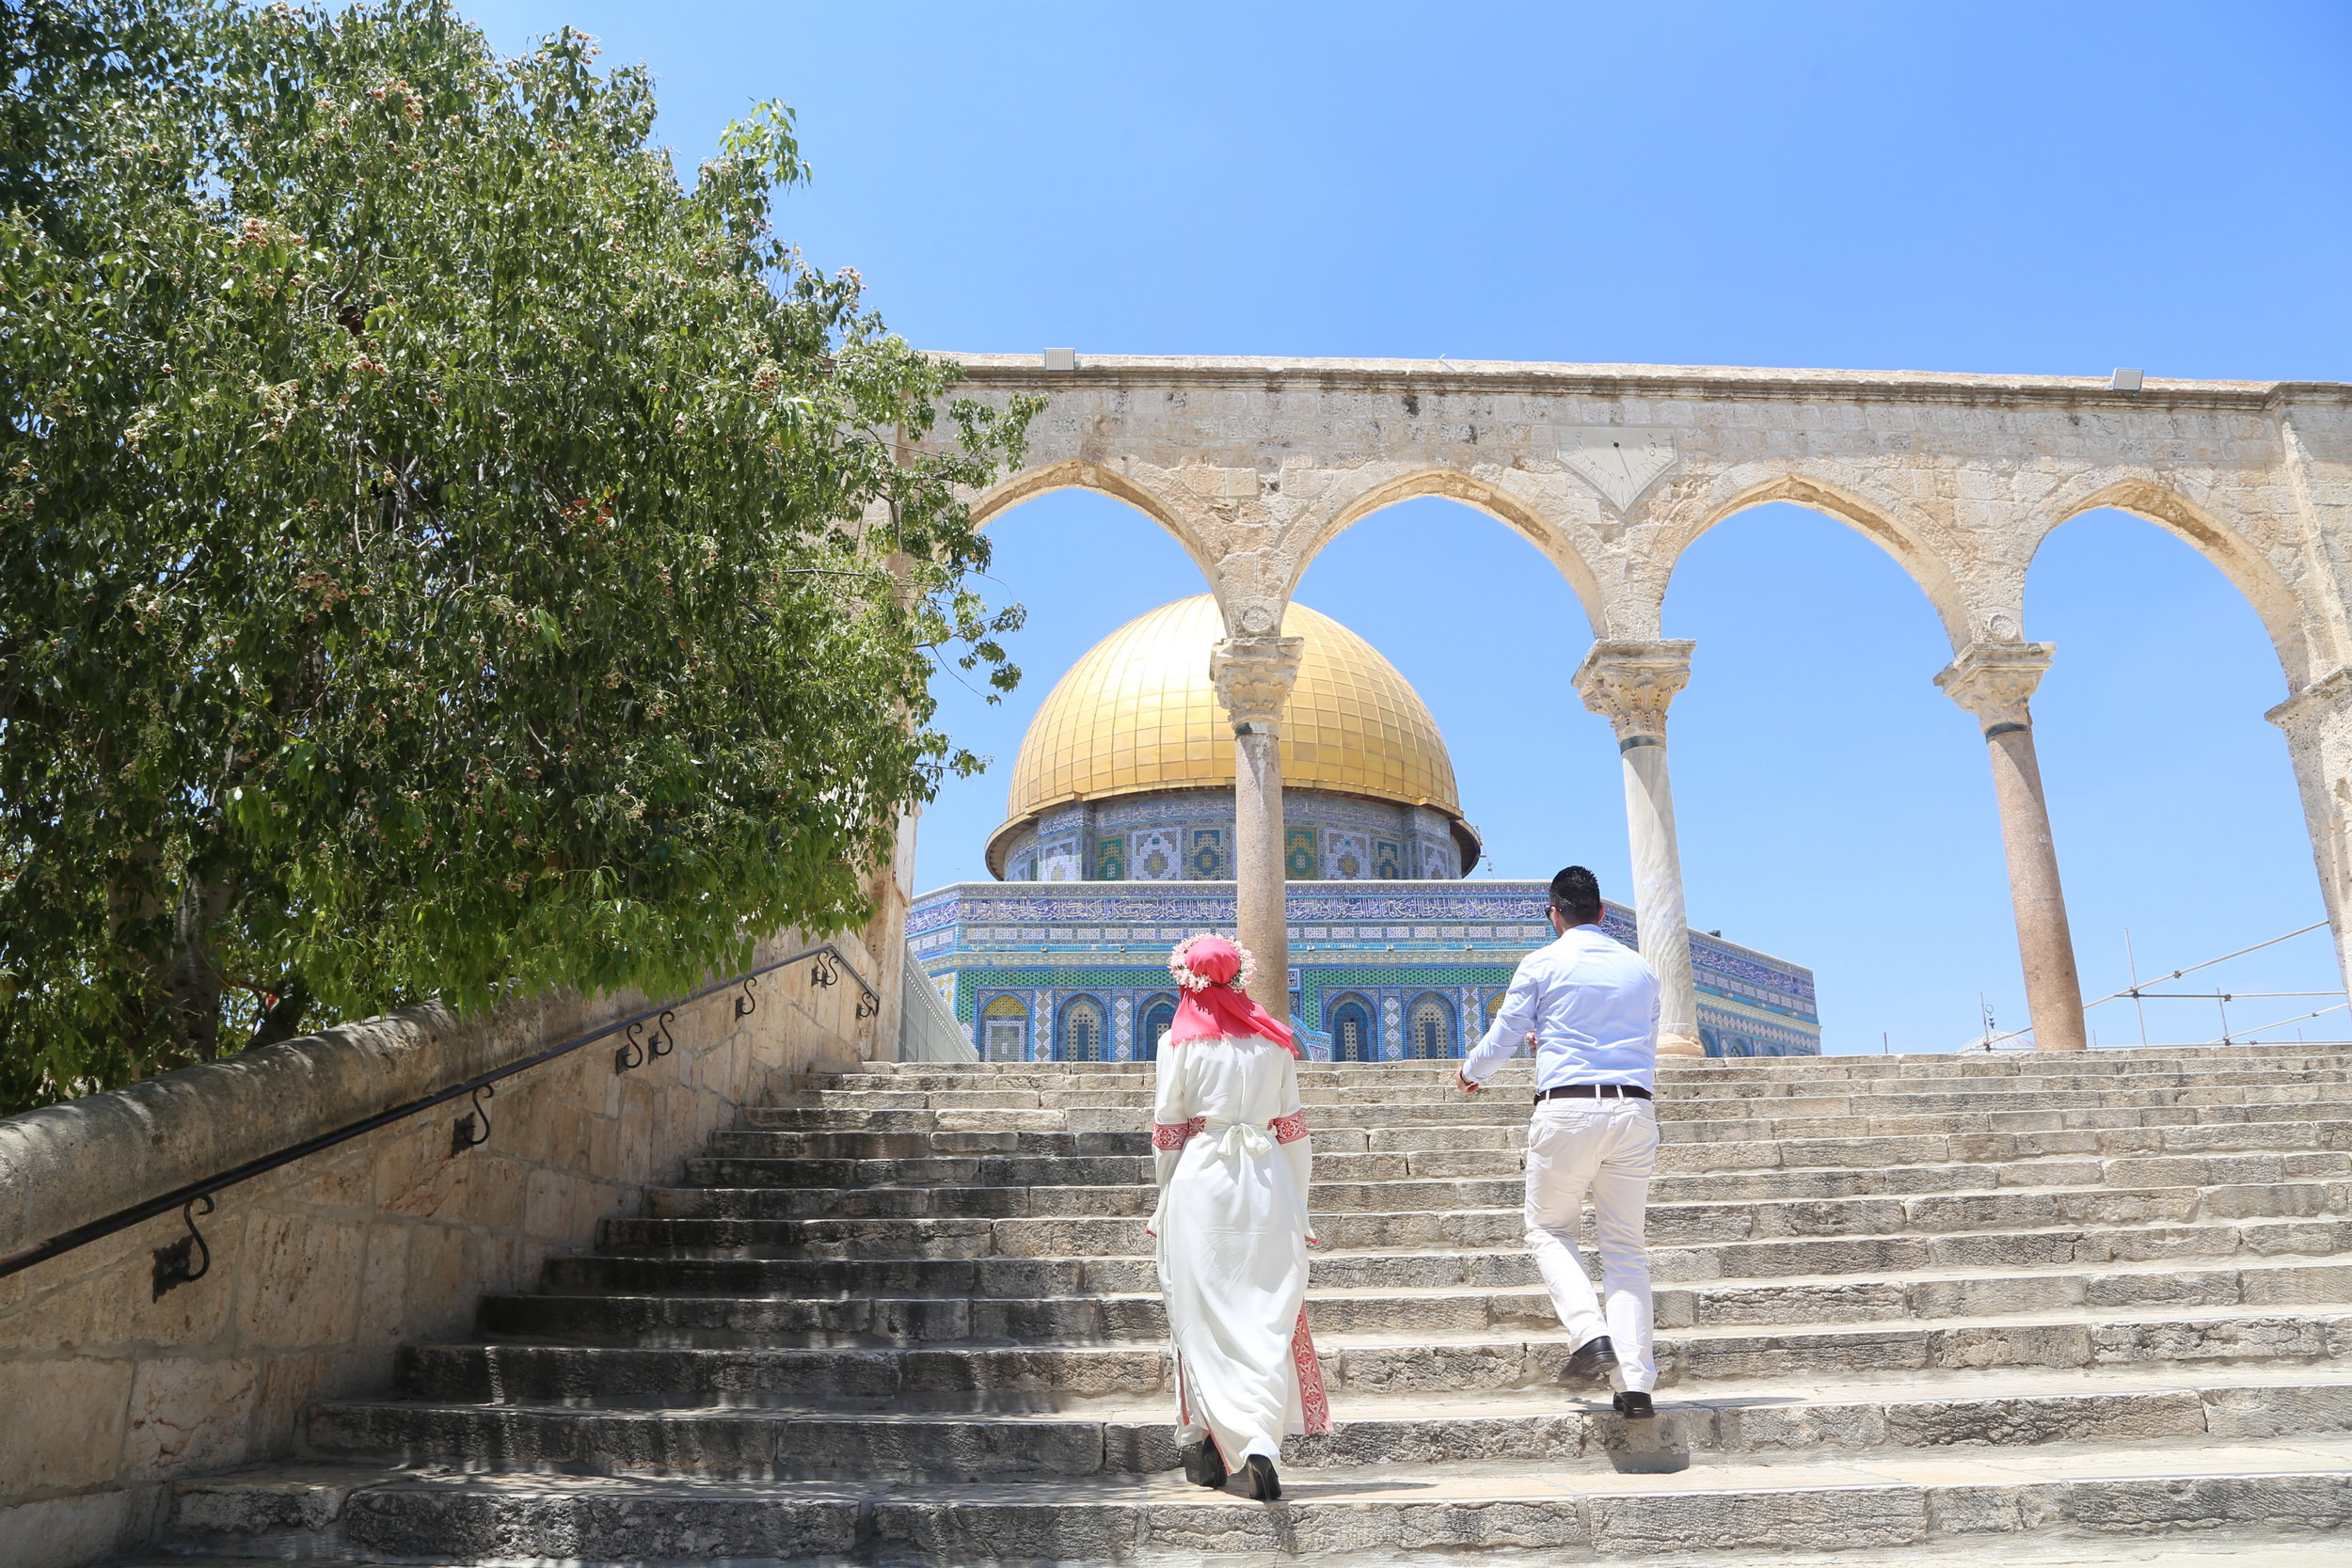 A couple walks towards the Dome of the Rock